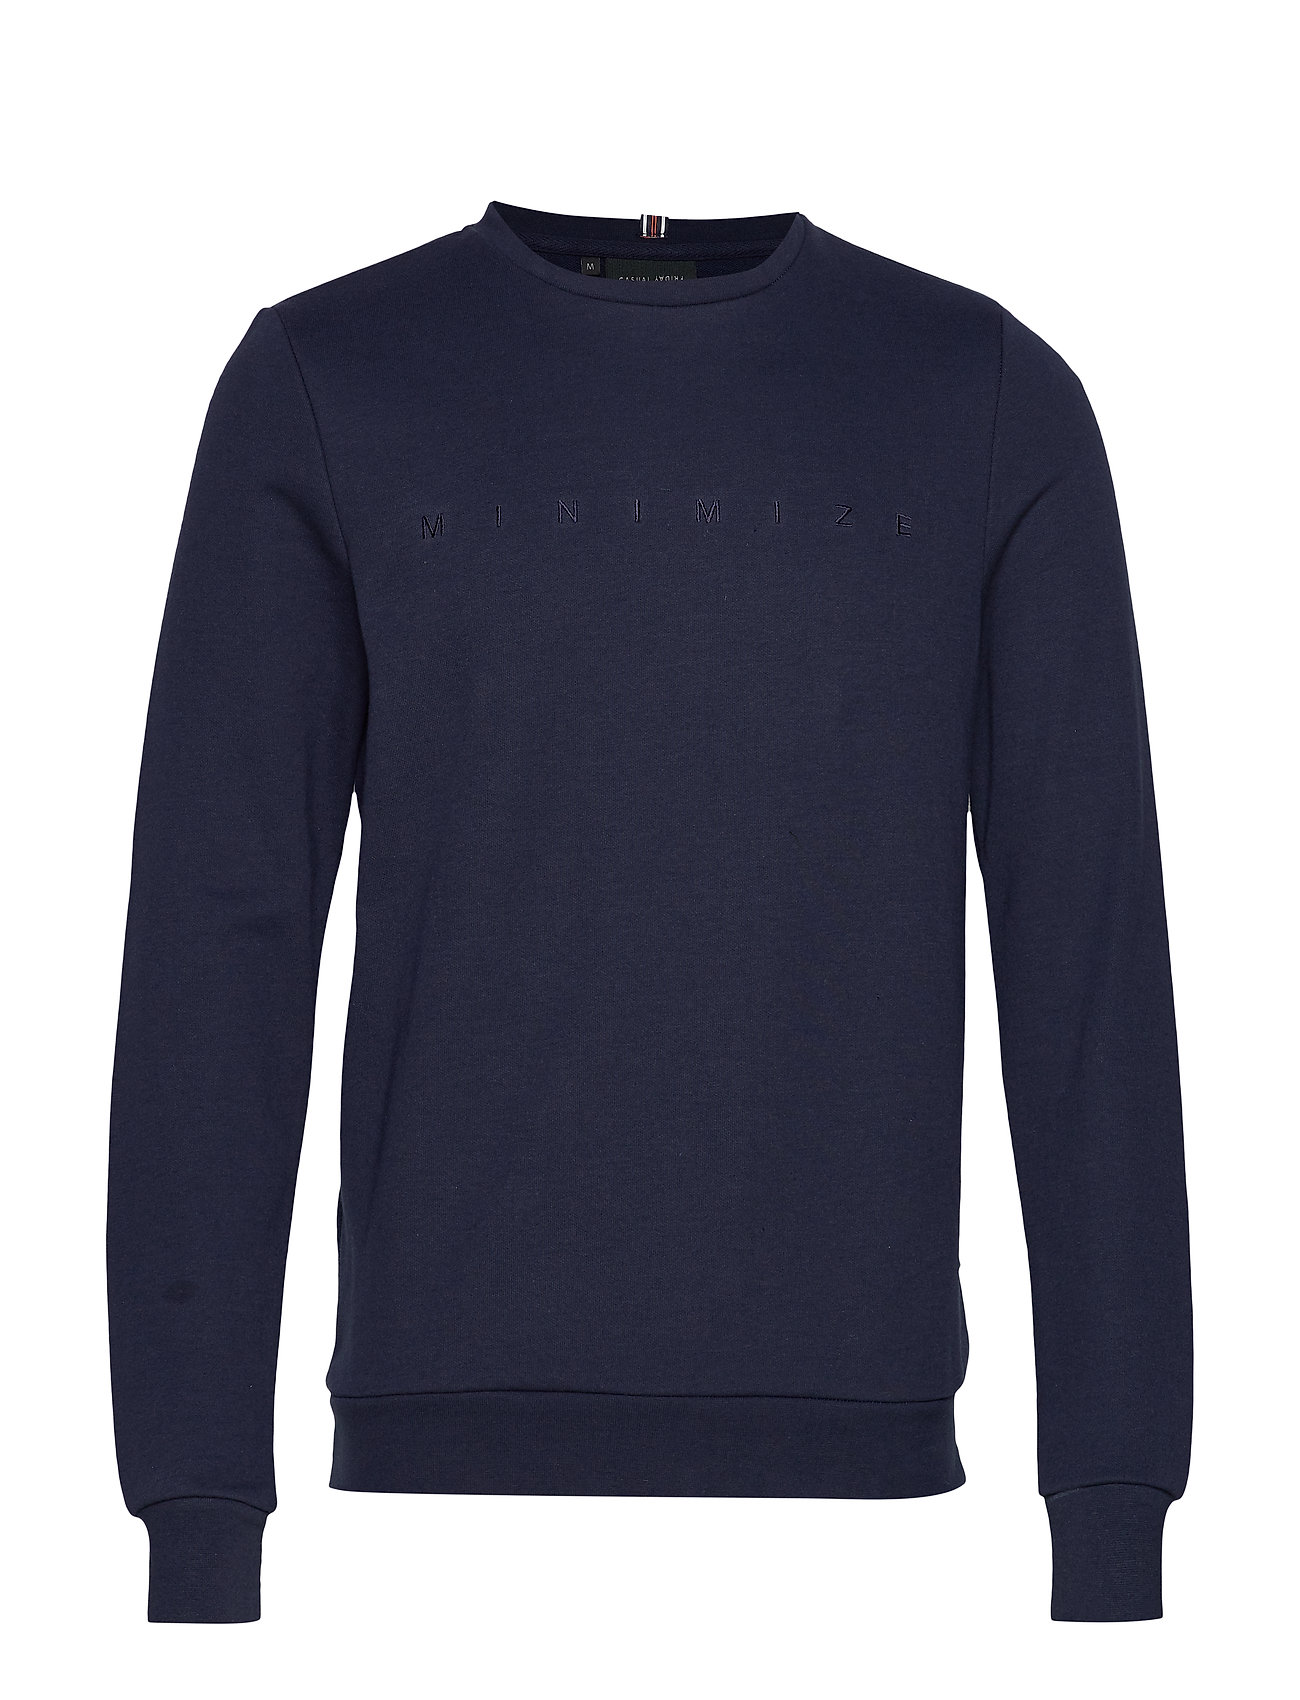 Friday SweatshirtnavyCasual SweatshirtnavyCasual SweatshirtnavyCasual Friday SweatshirtnavyCasual Friday Friday SzGVpMqU